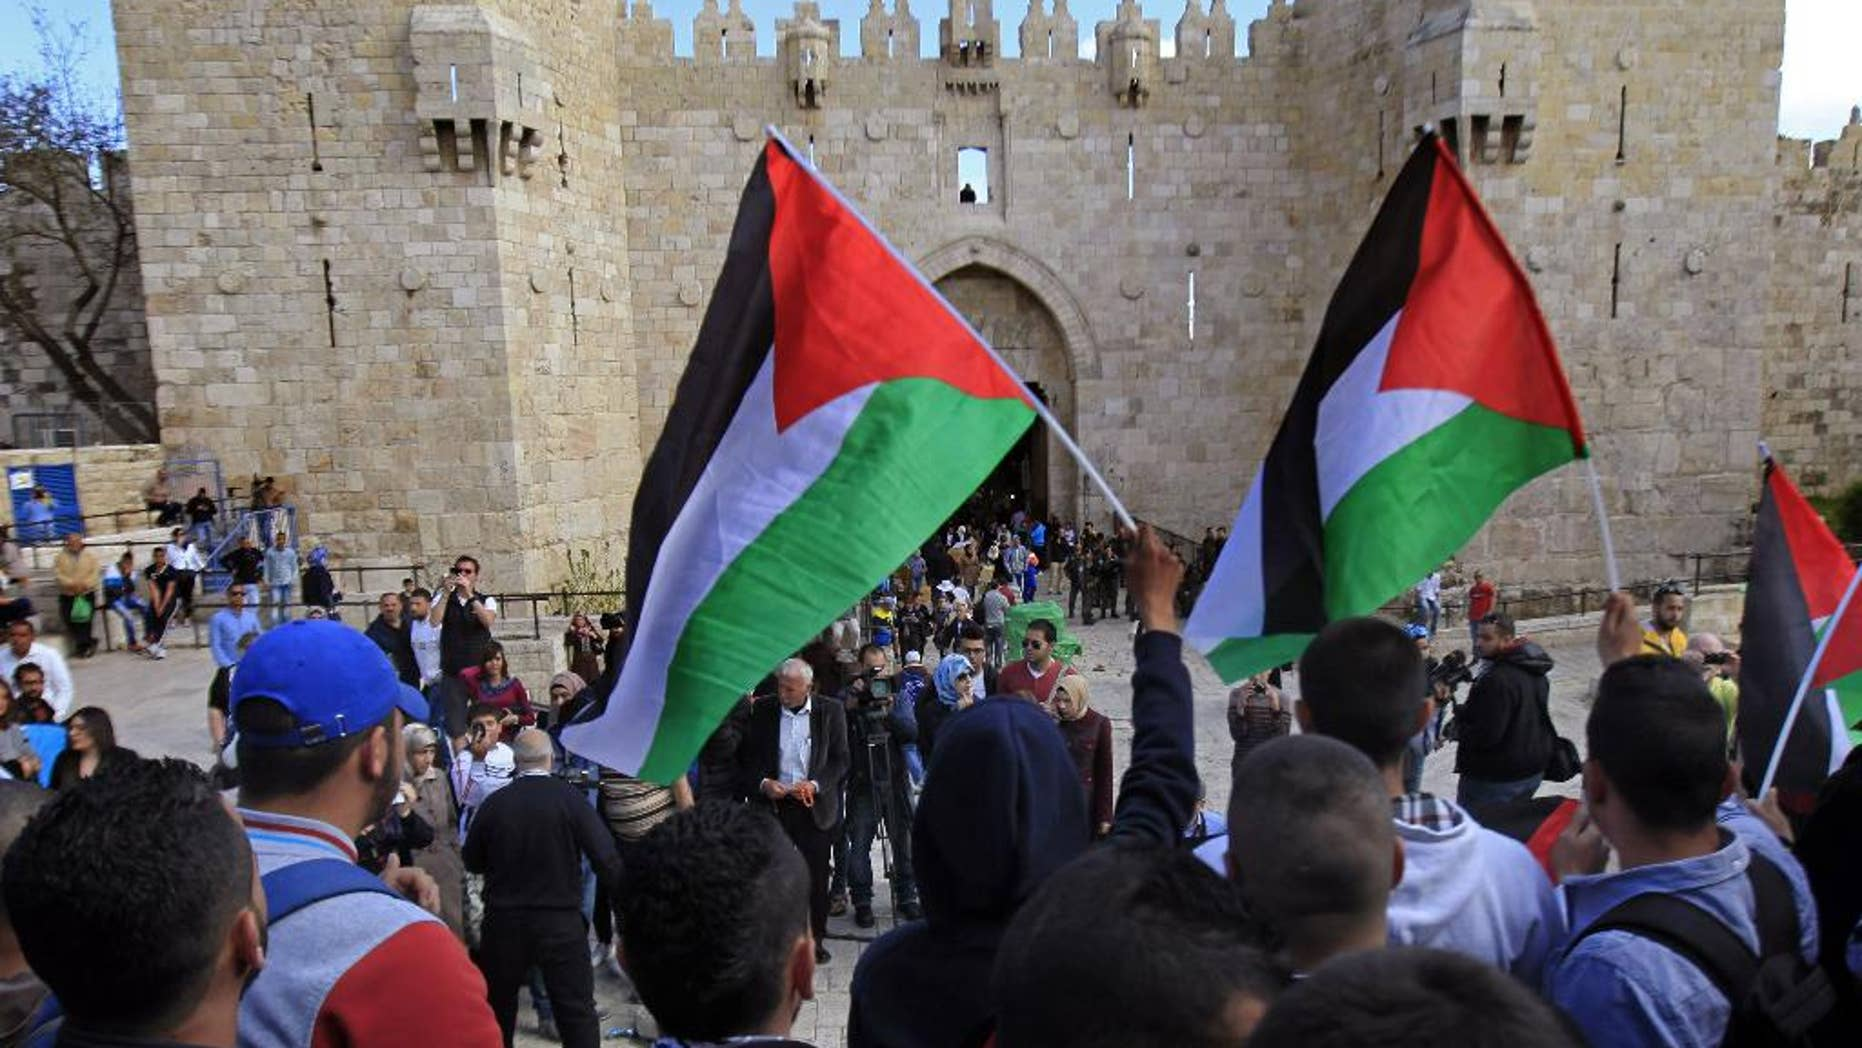 Palestinians carry national flags during a protest marking Land Day in front of the Damascus Gate in Jerusalem's Old City, Monday, March 30, 2015. Land Day commemorates riots on March 30, 1976, when six people were killed during a protest by Israeli Arabs whose property was annexed in northern Israel to expand Jewish communities. (AP Photo/Mahmoud Illean)